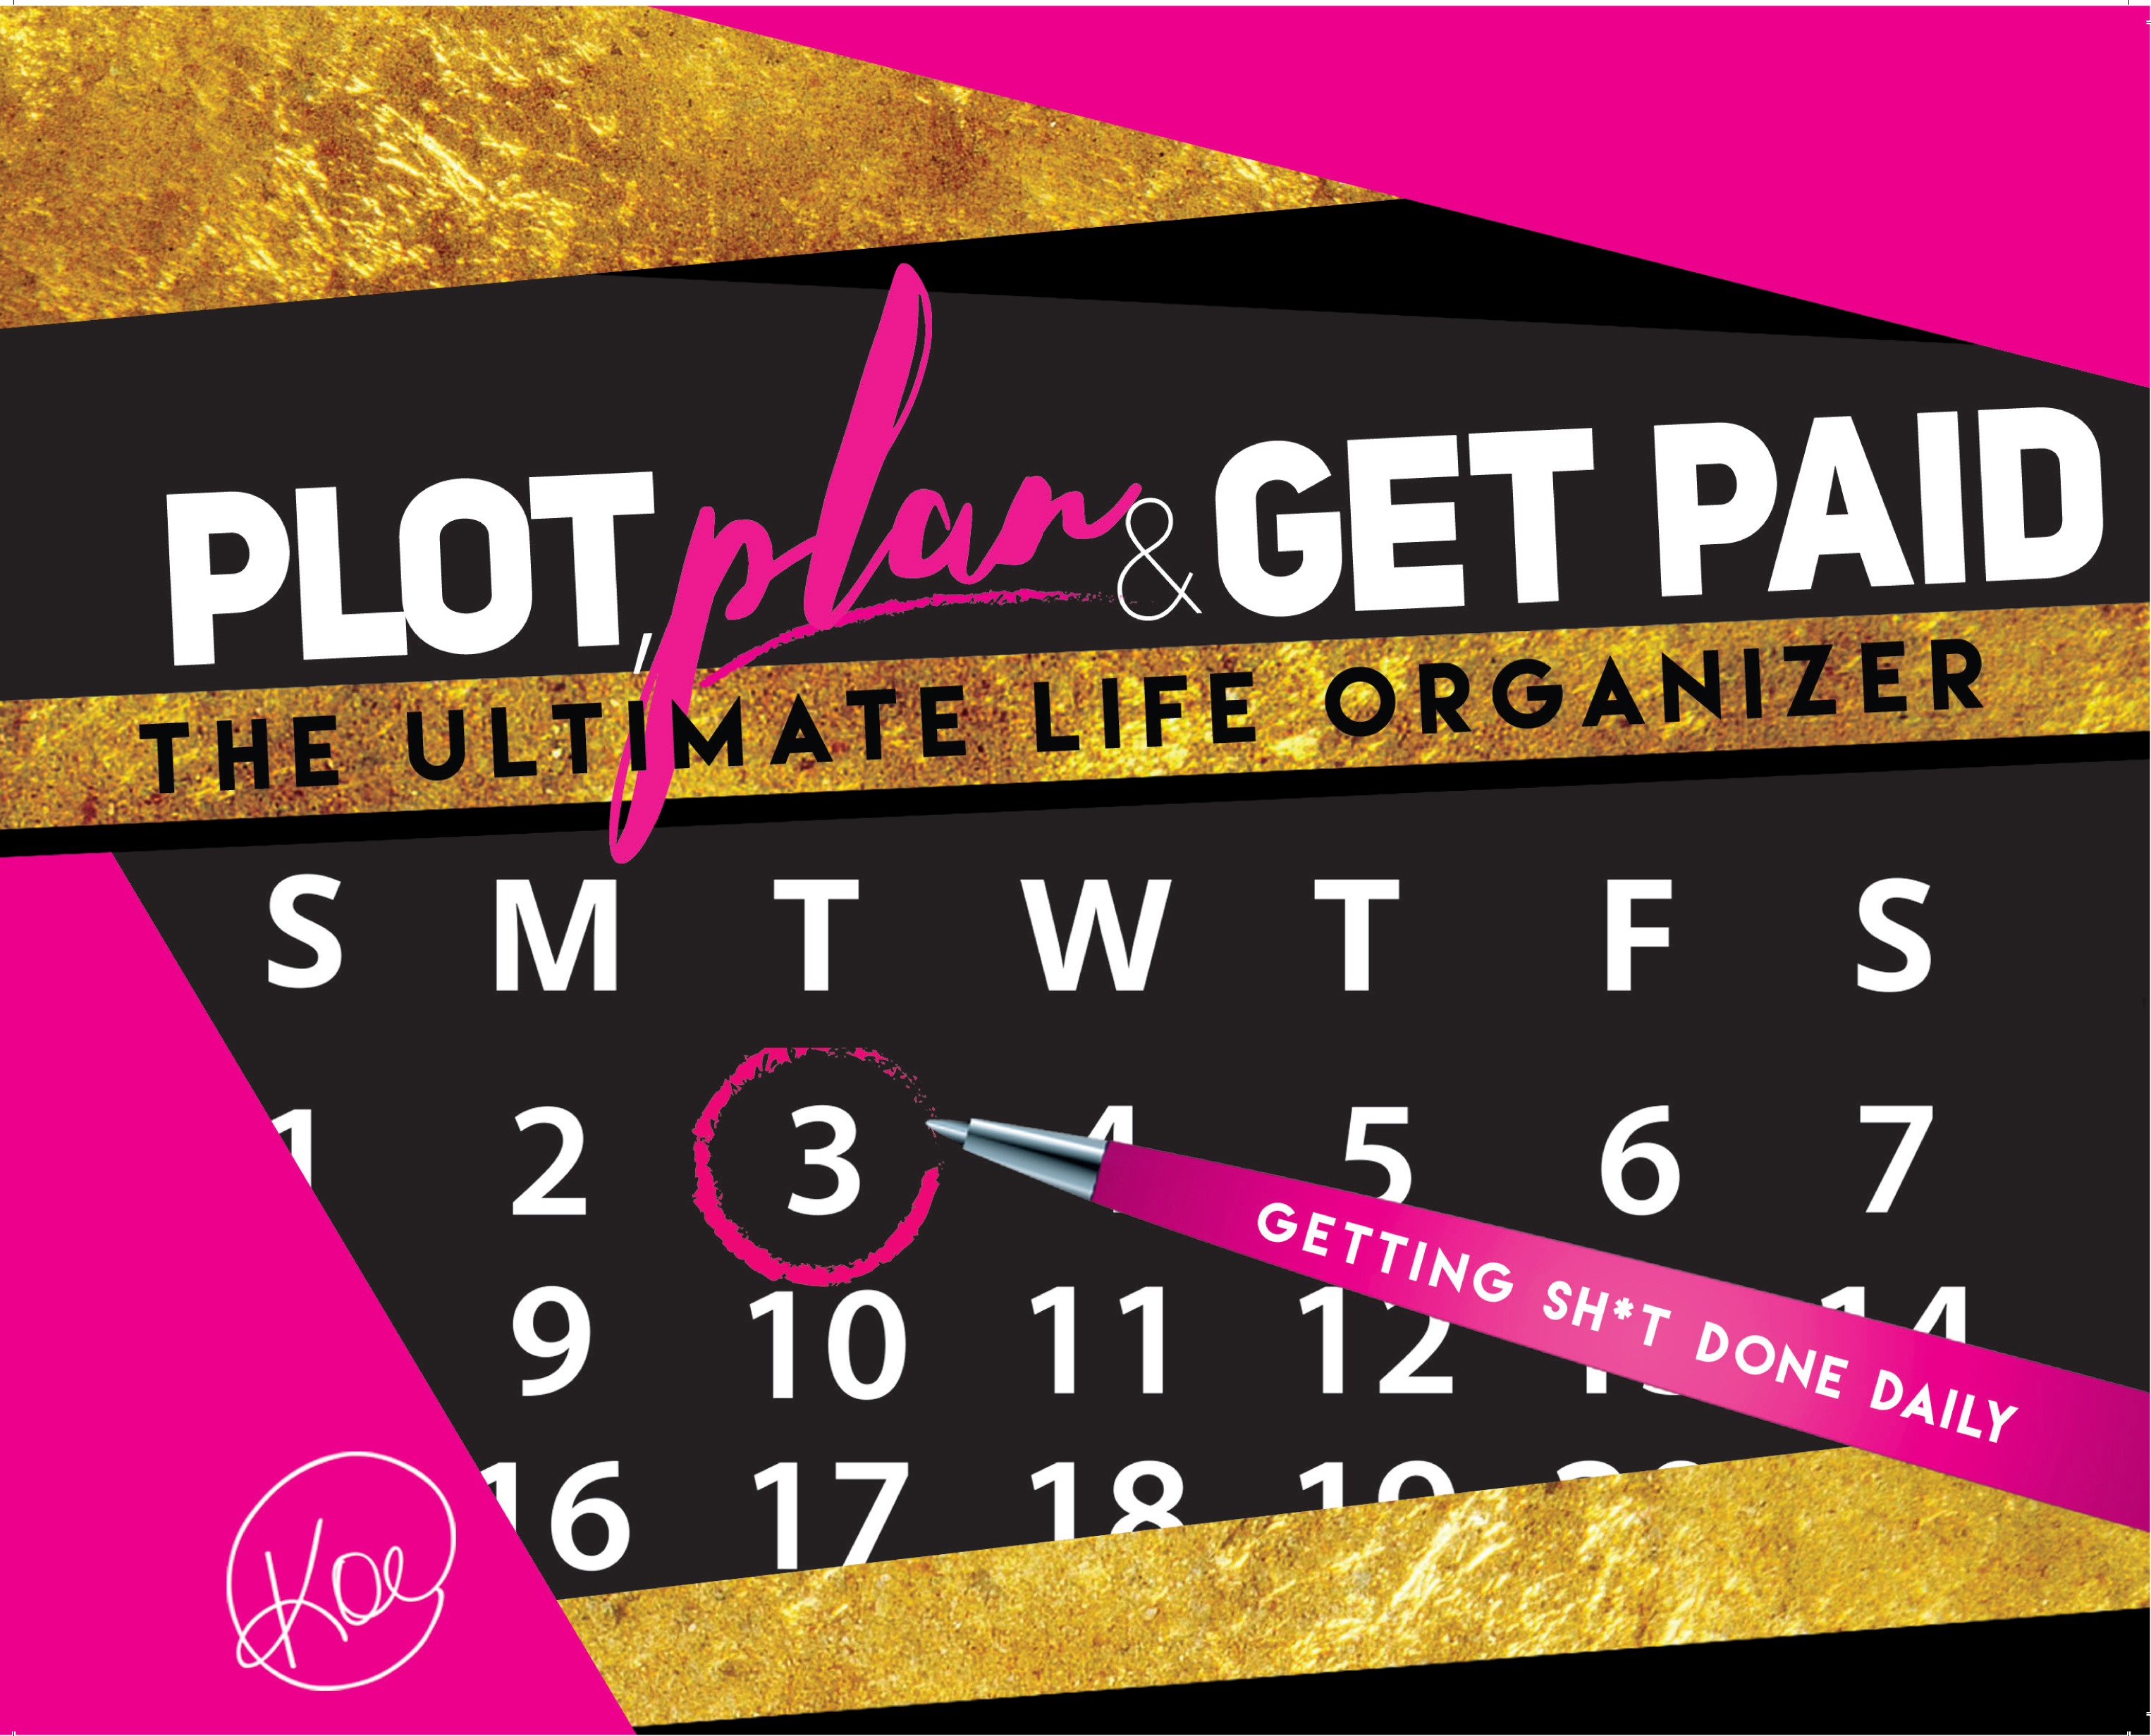 Plot, Plan & GET PAID with a 2017 Planner